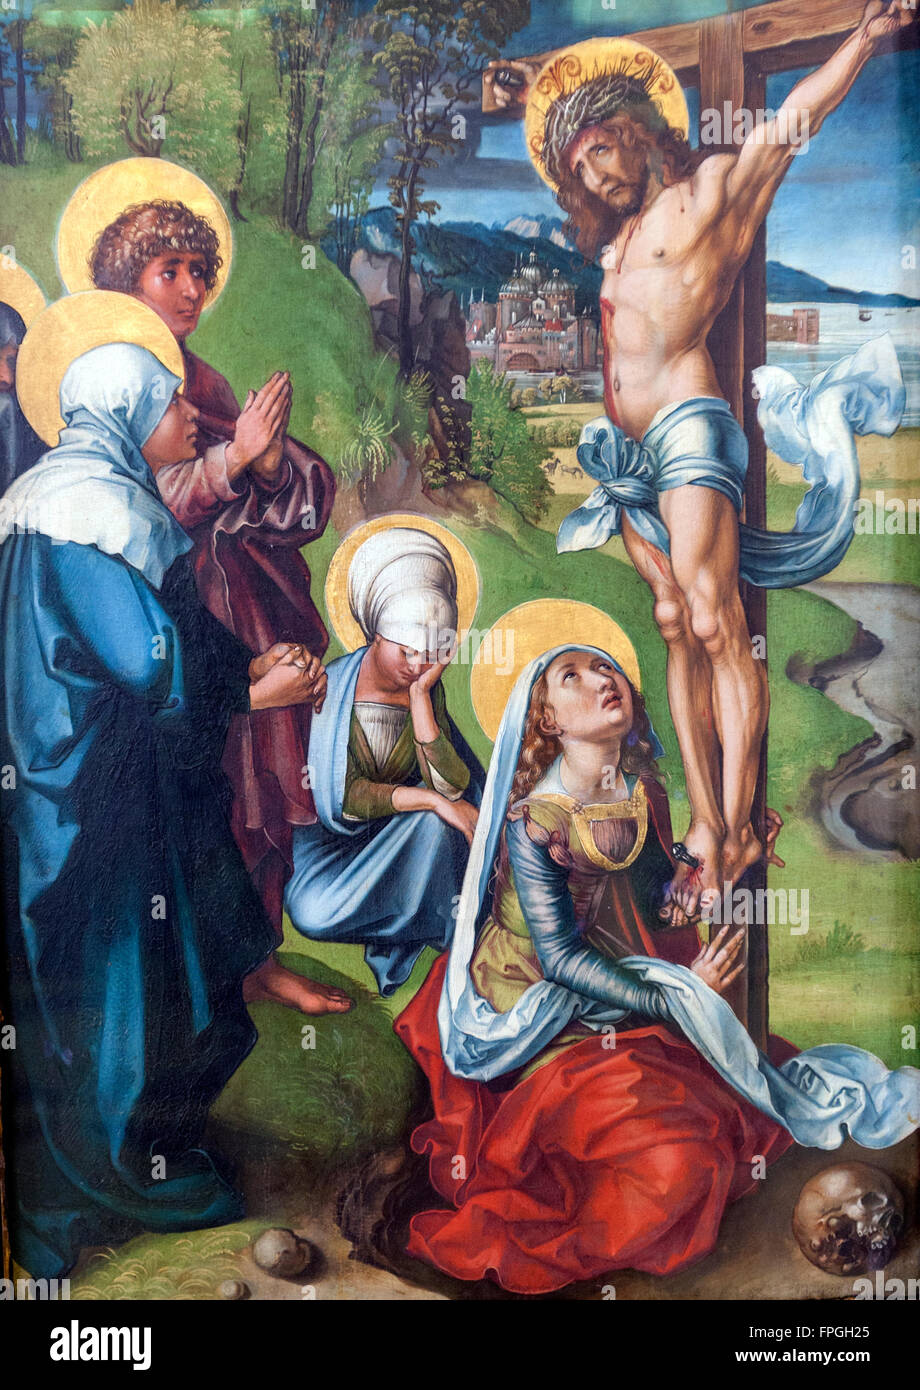 One of the Albrecht Dürer: Seven Sorrows: Crucifixion in Gemäldegalerie Alte Meister, Dresden, Saxony, Germany Stock Photo